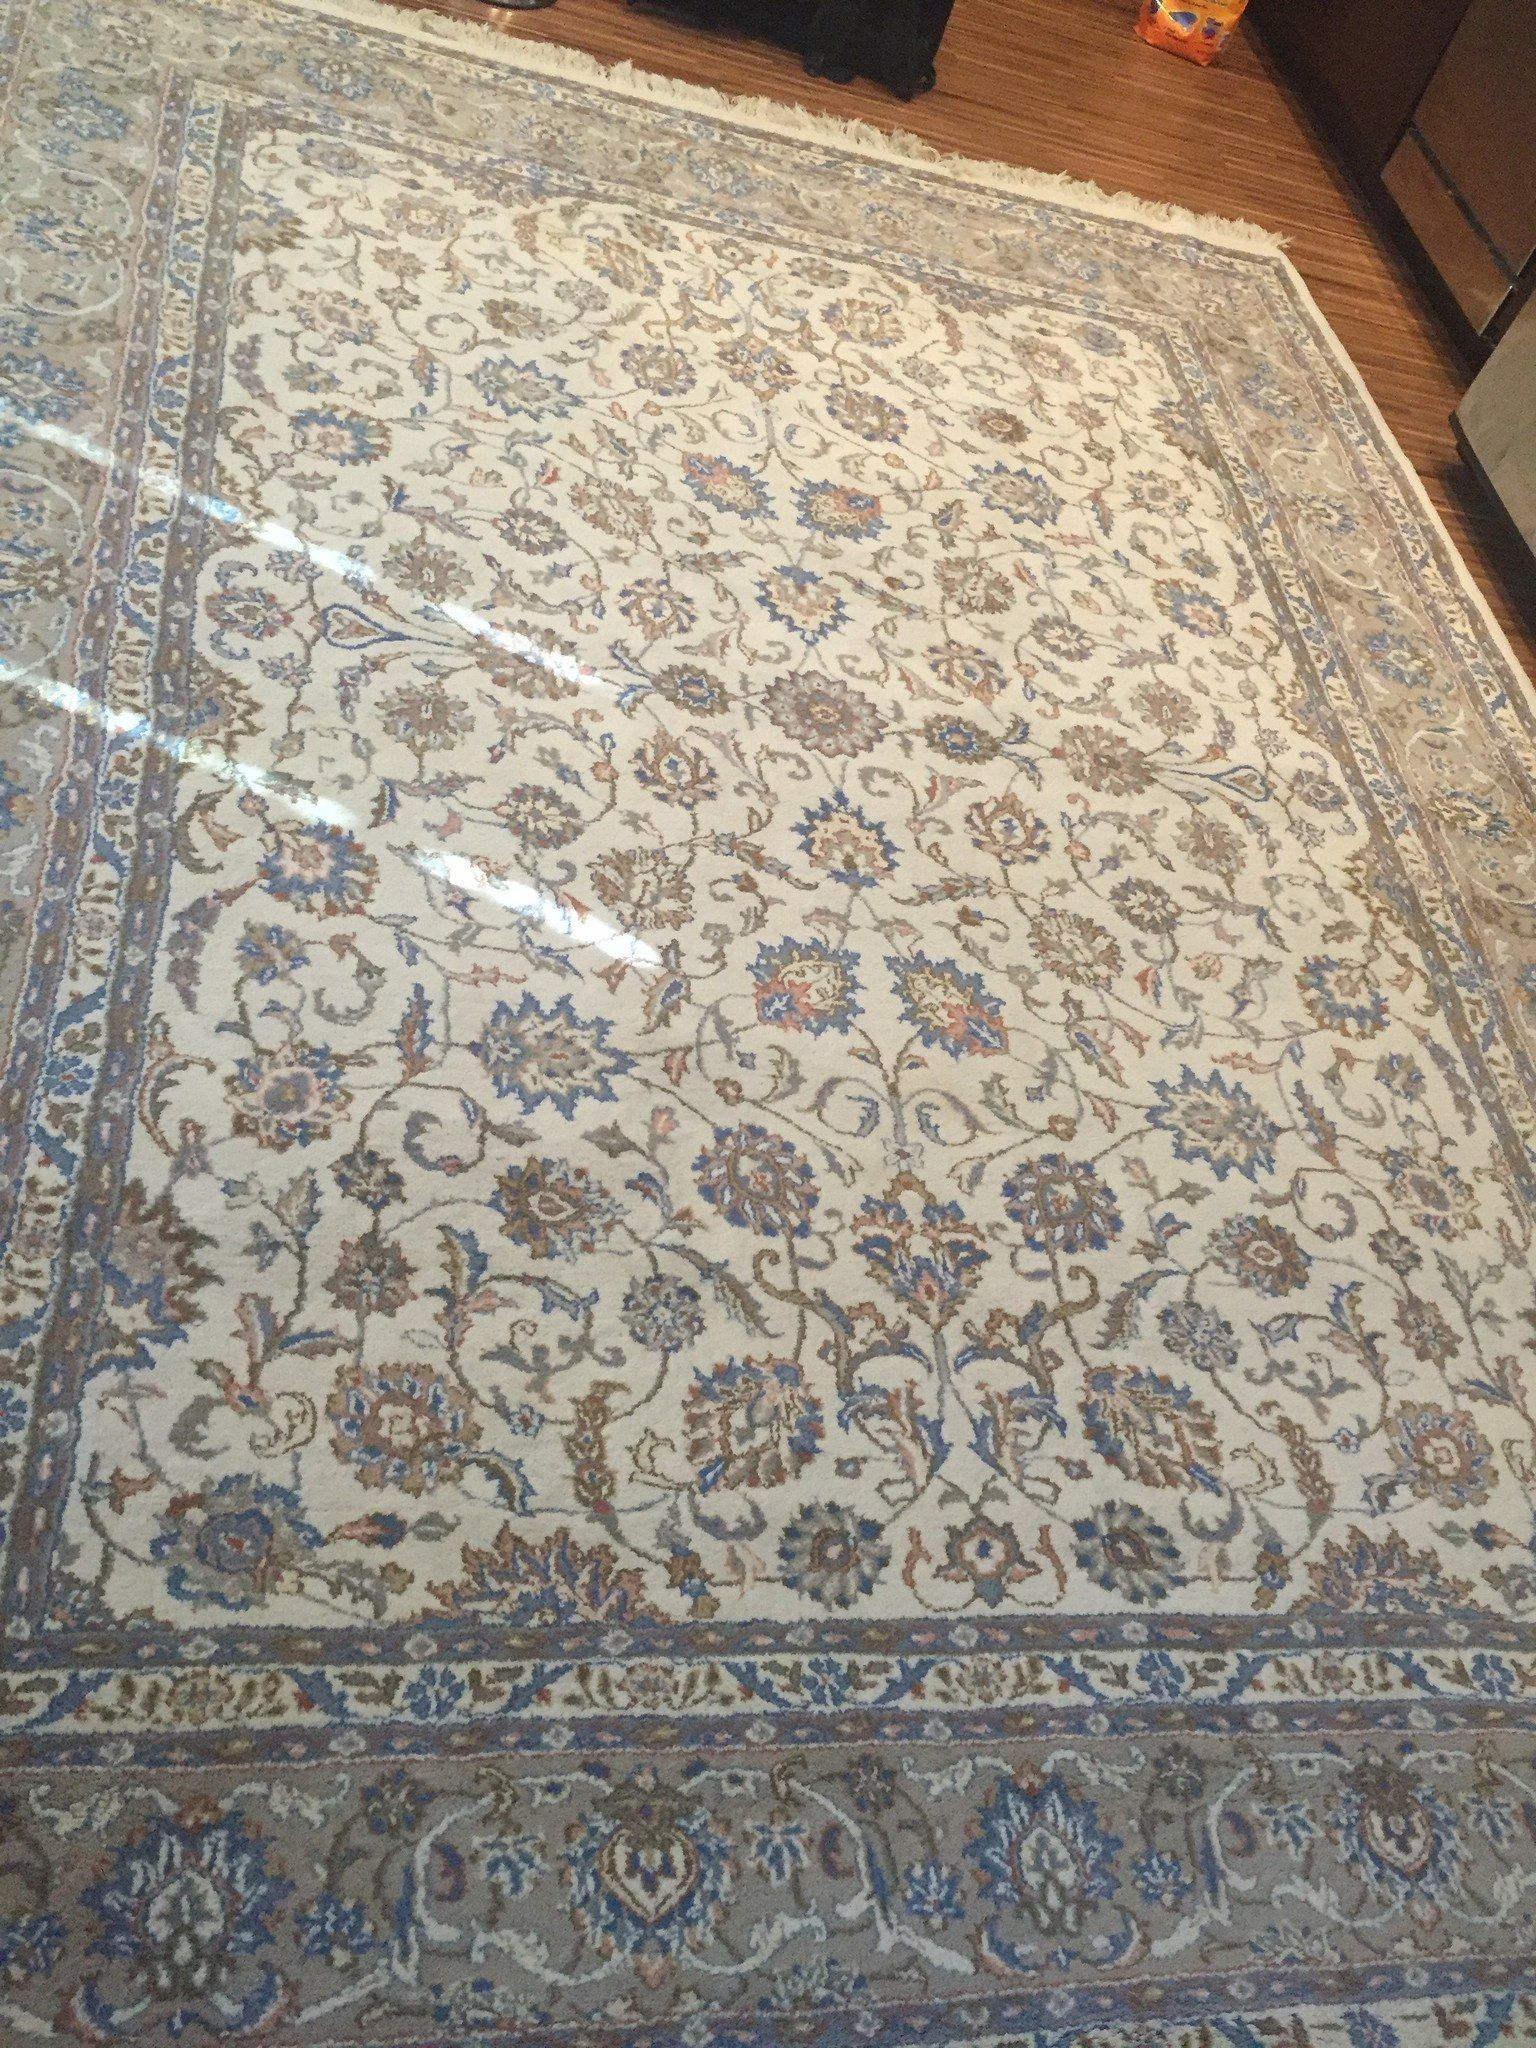 She S A Super Soft Large Fl Oriental Rug Flora Medium To Thick Pile Makes It The Perfect Living Room Area Formal Or Informal Dining